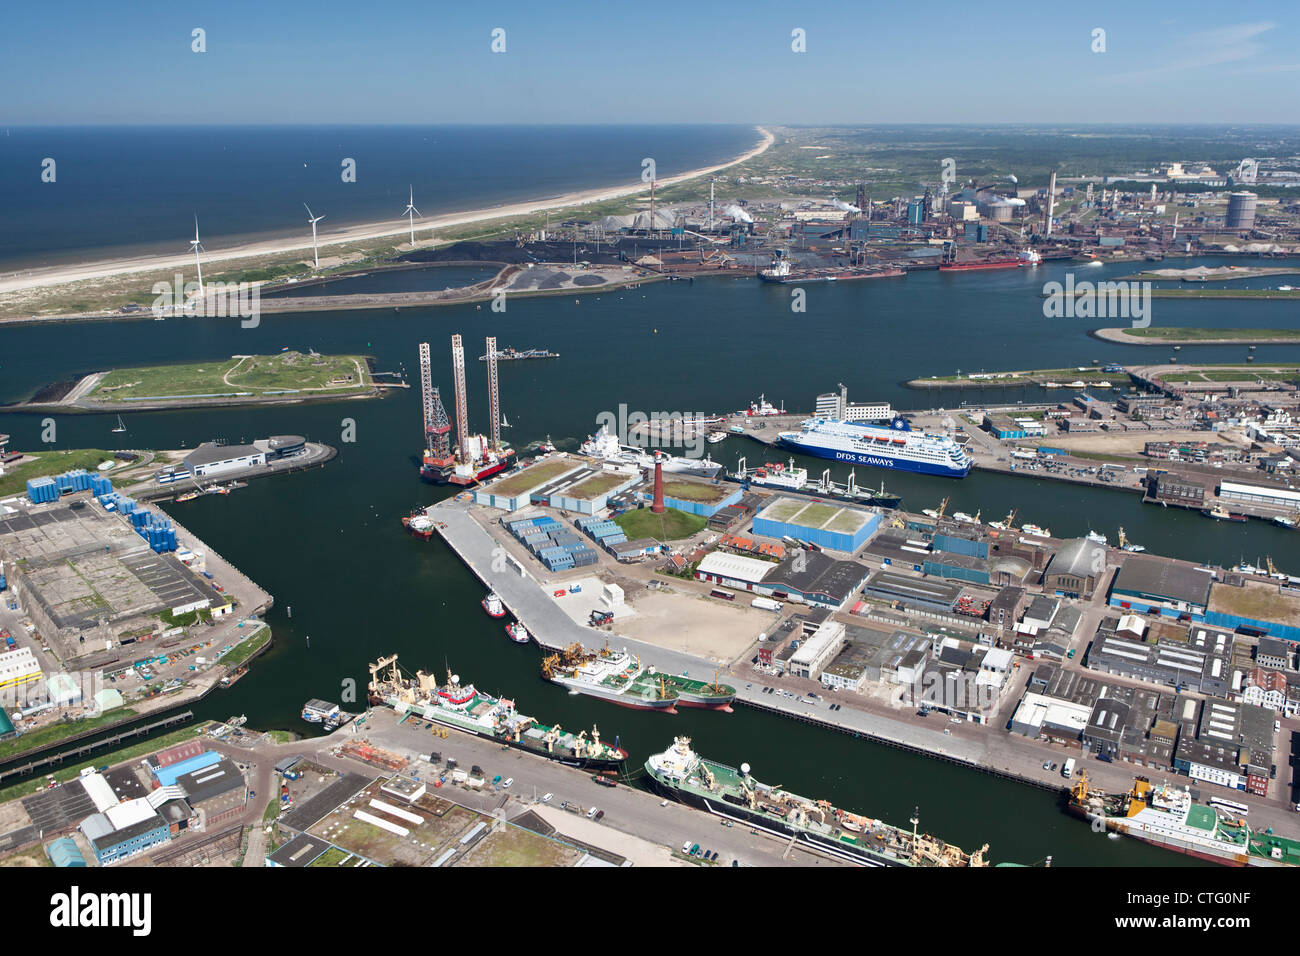 The Netherlands, IJmuiden, Aerial, Entrance of North Sea Canal. Harbor. Port. - Stock Image